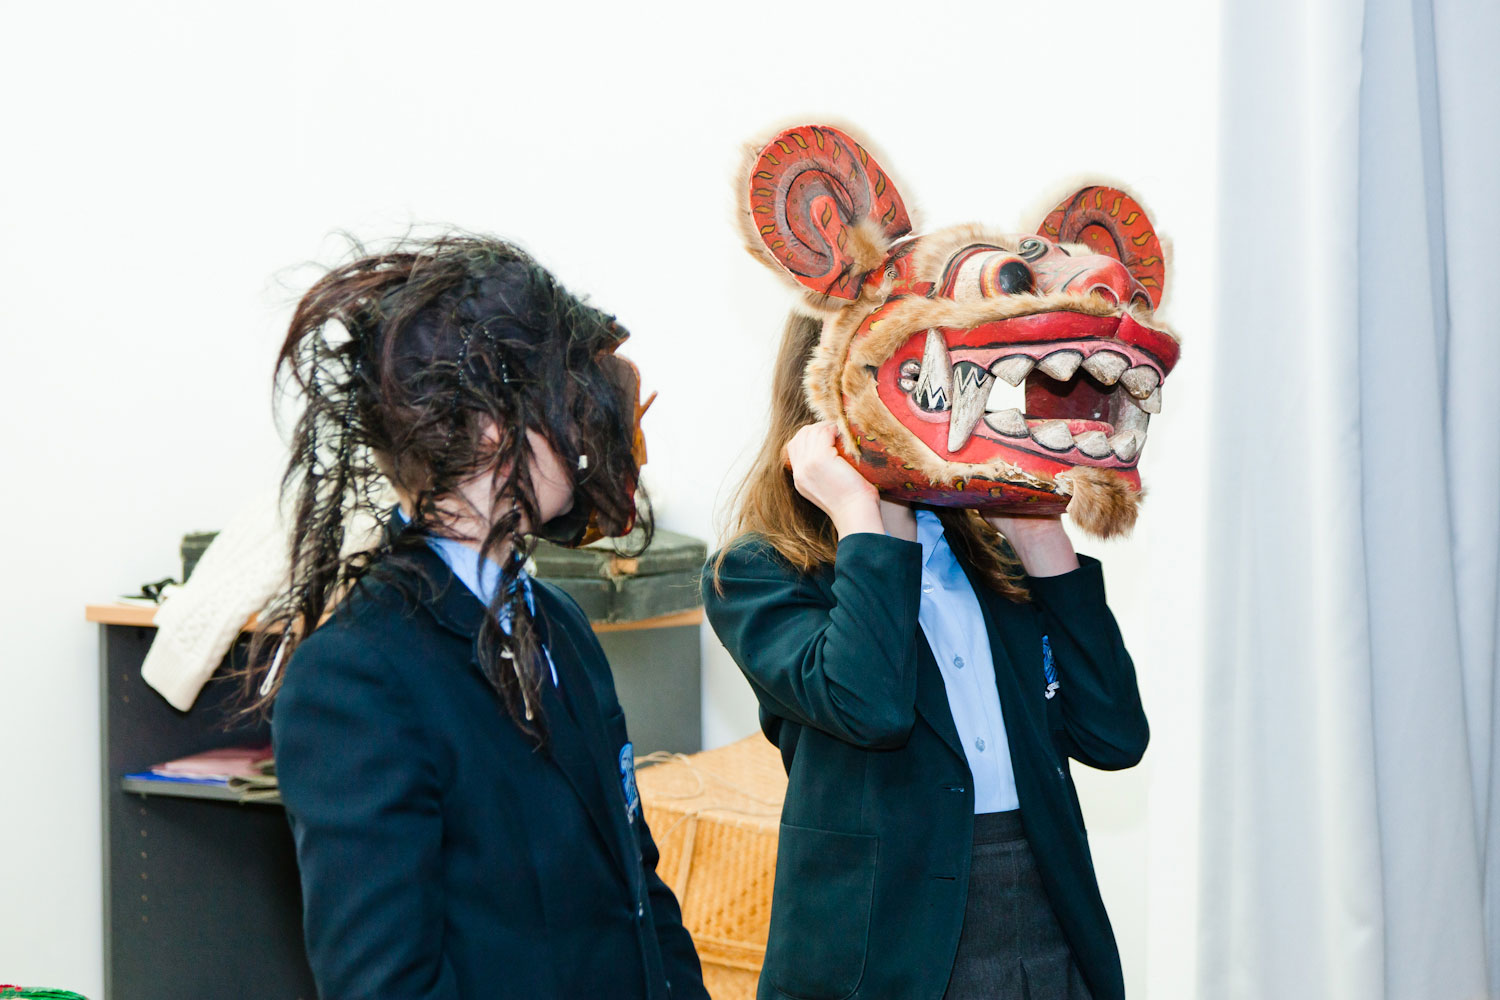 Two school children in blue uniforms have mask heads on. One is turned away from the camera, but the other is a large chinese dragon mask.